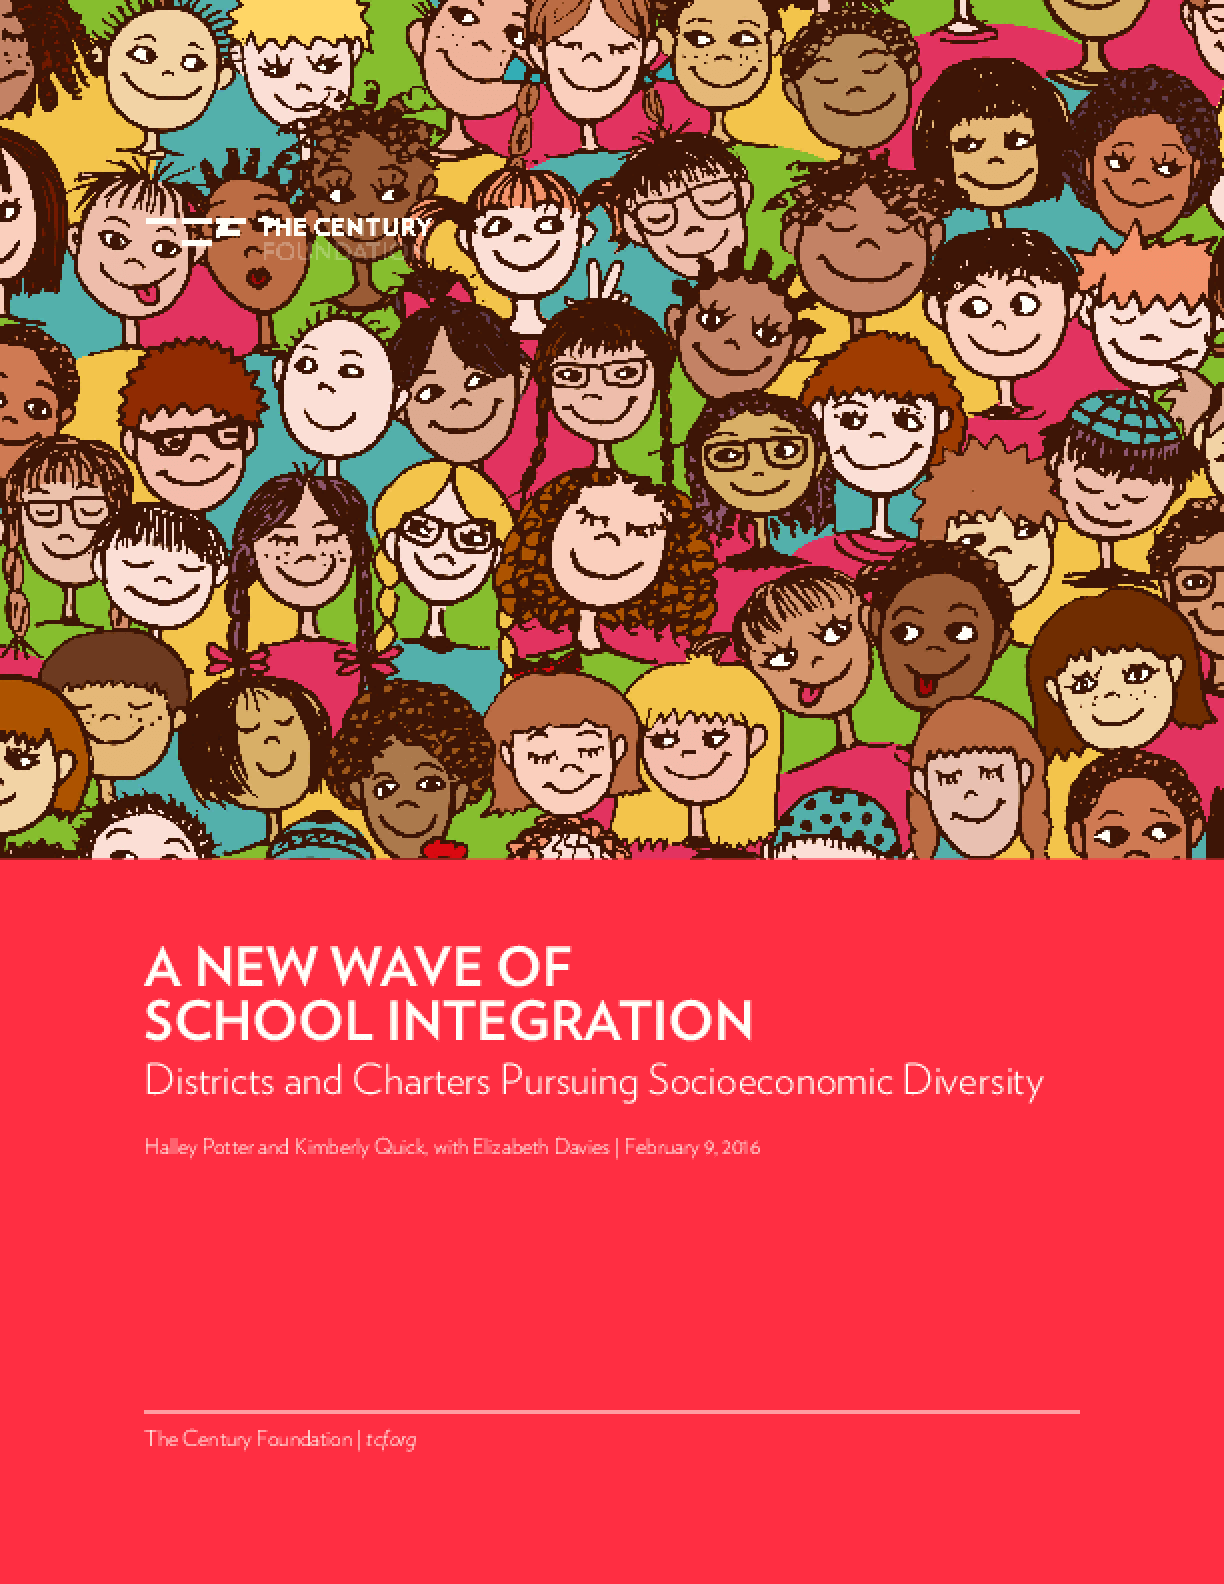 A New Wave of School Integration: Districts and Charters Pursuing Socioeconomic Diversity